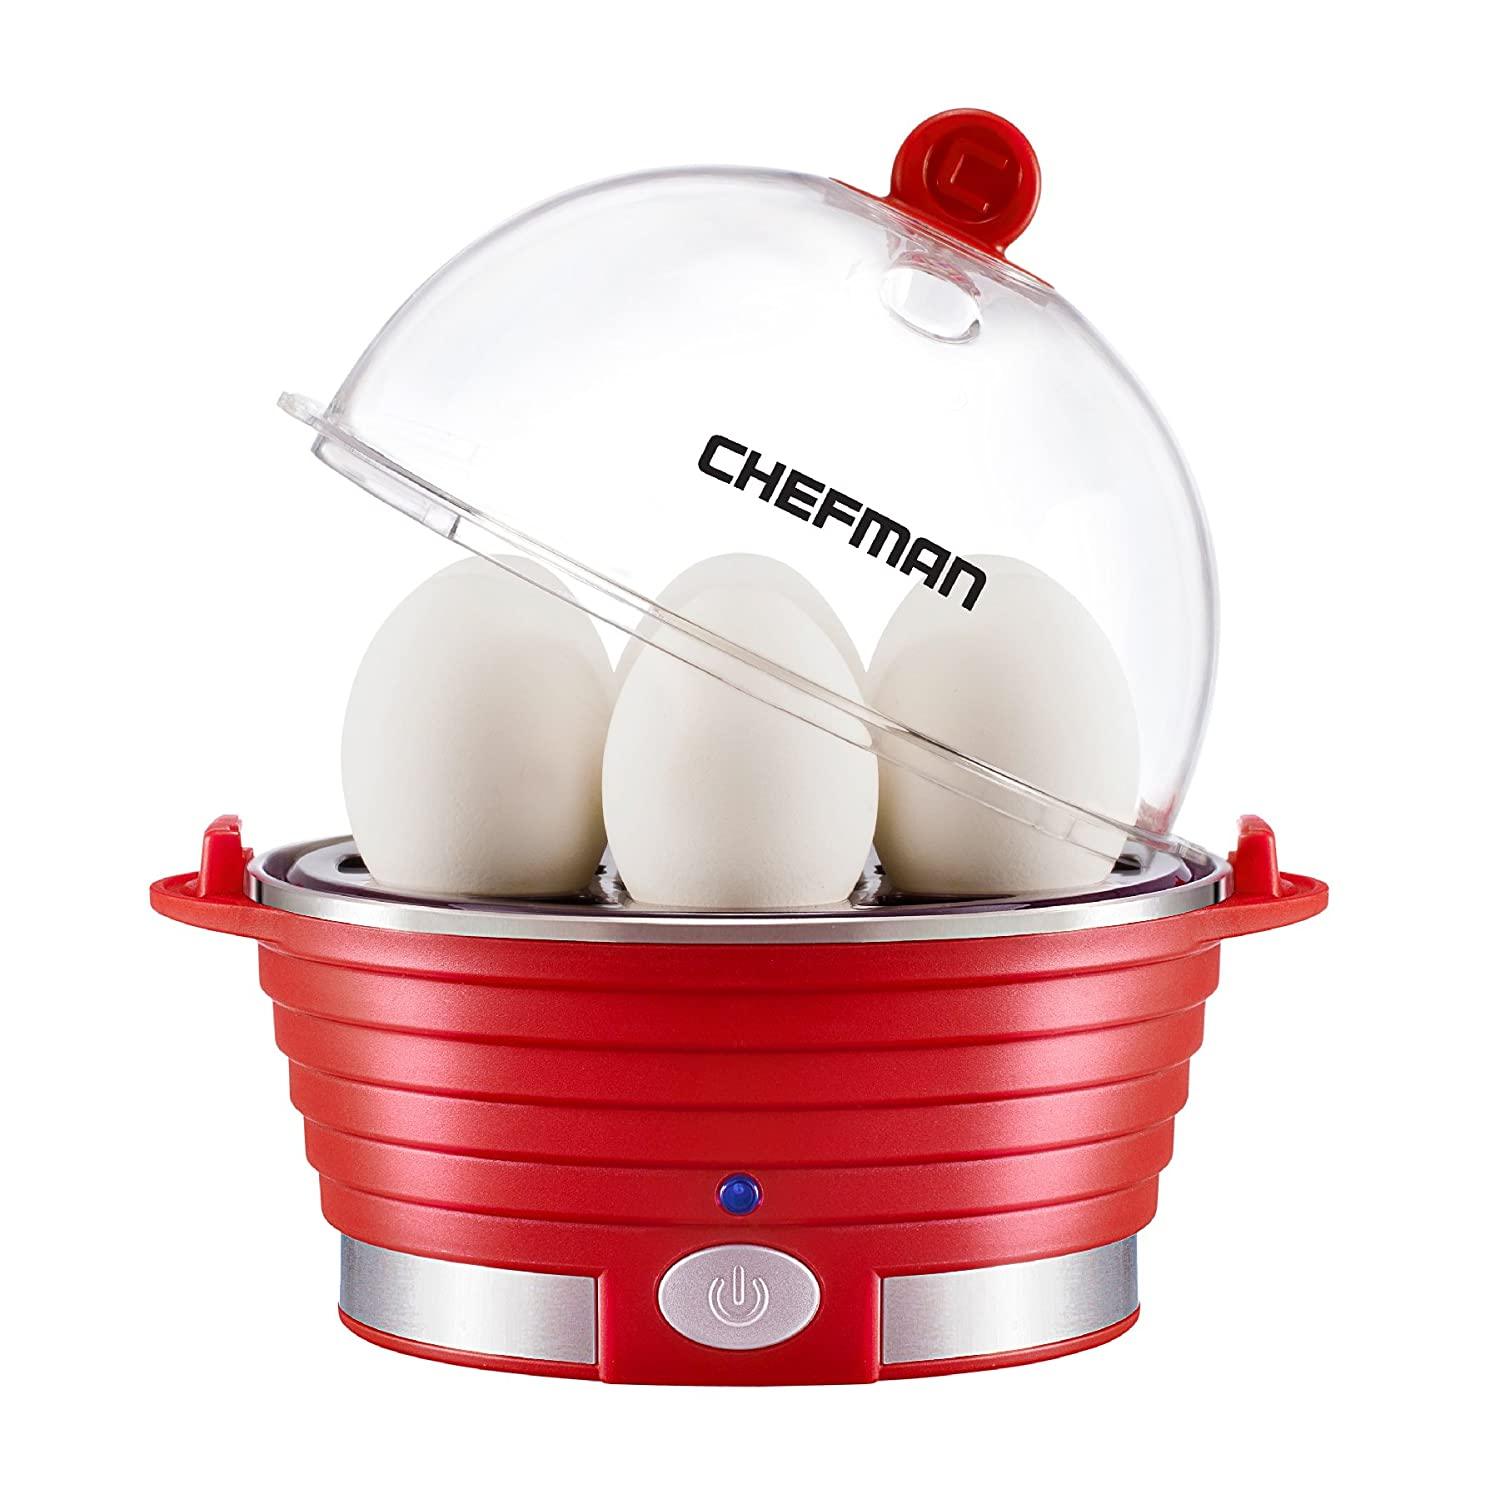 Chefman Electric Egg Cooker/Boiler, Rapid Egg Maker, Countertop Modern Stylish Design, Hard Boil Egg Steamer and Poacher, 6 Egg Capacity With Removable Tray - Red